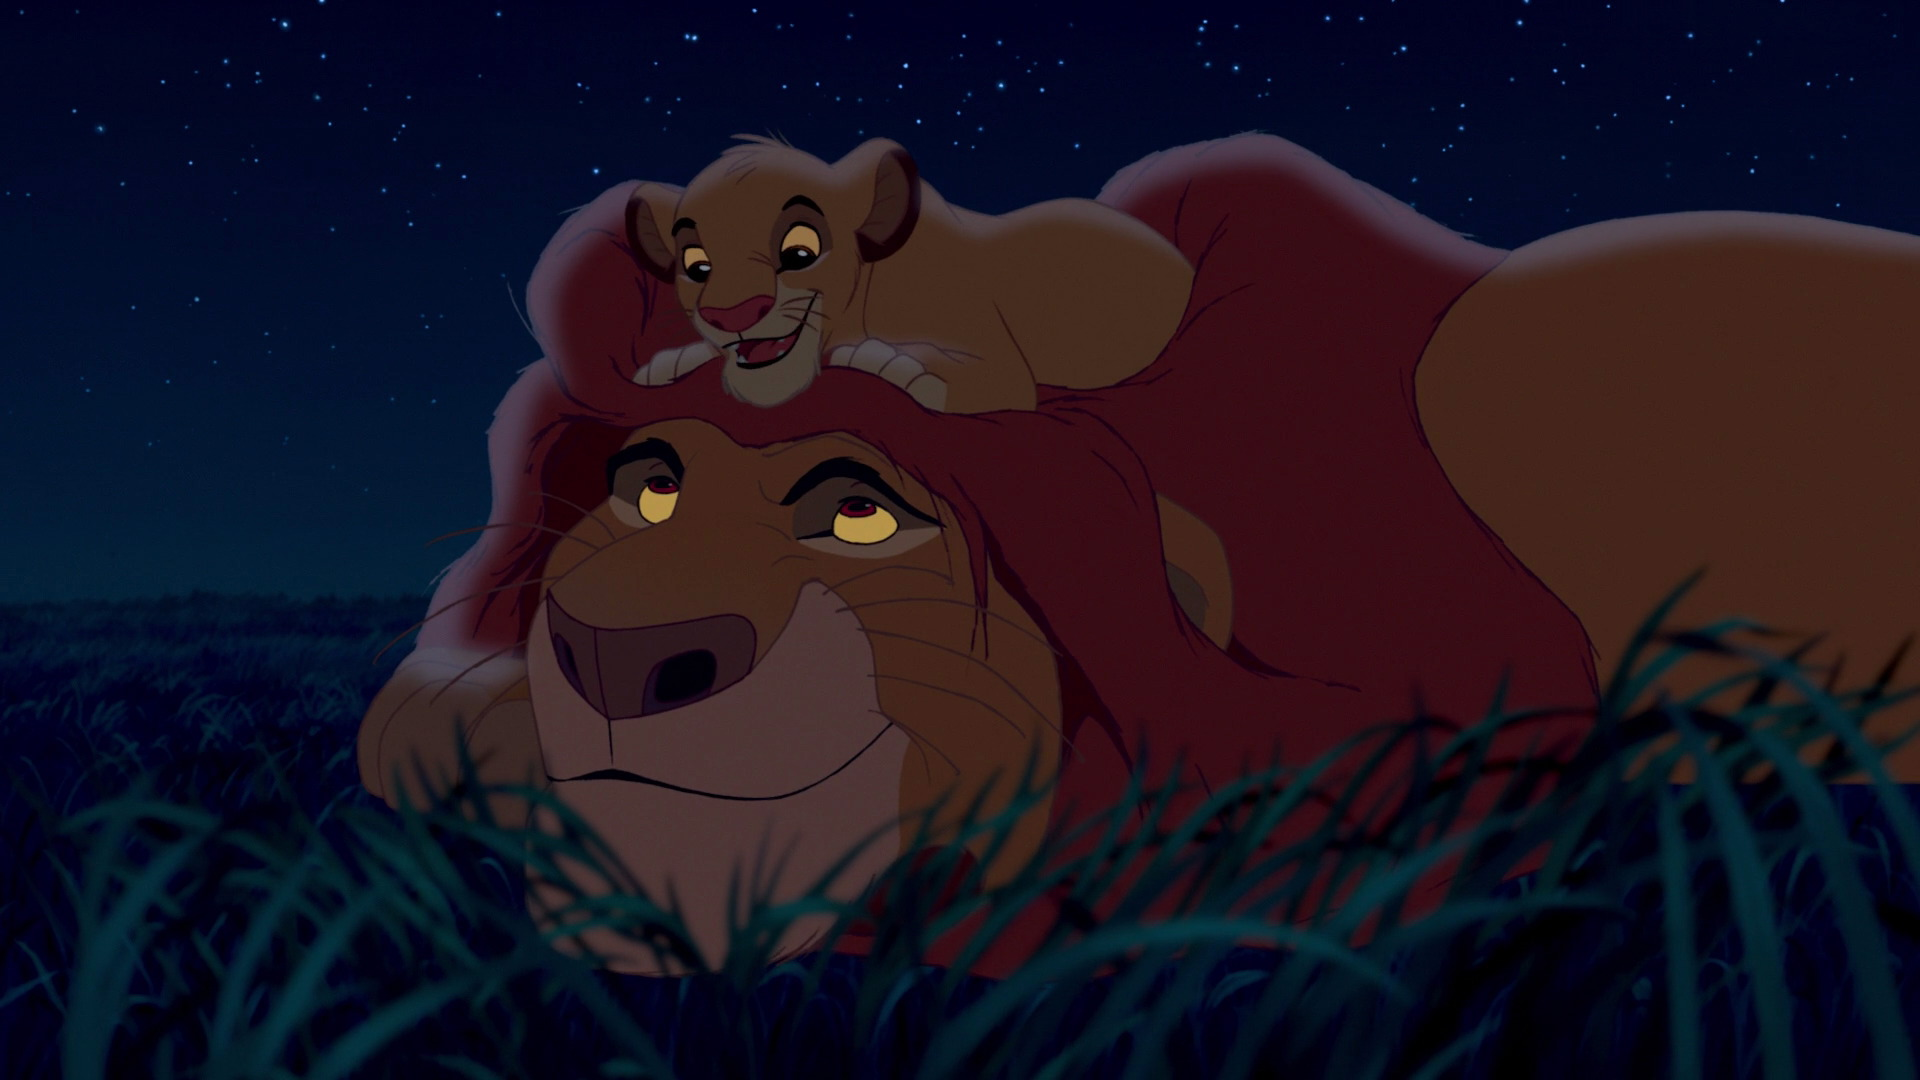 Lion King Disneyscreencaps Com 2890